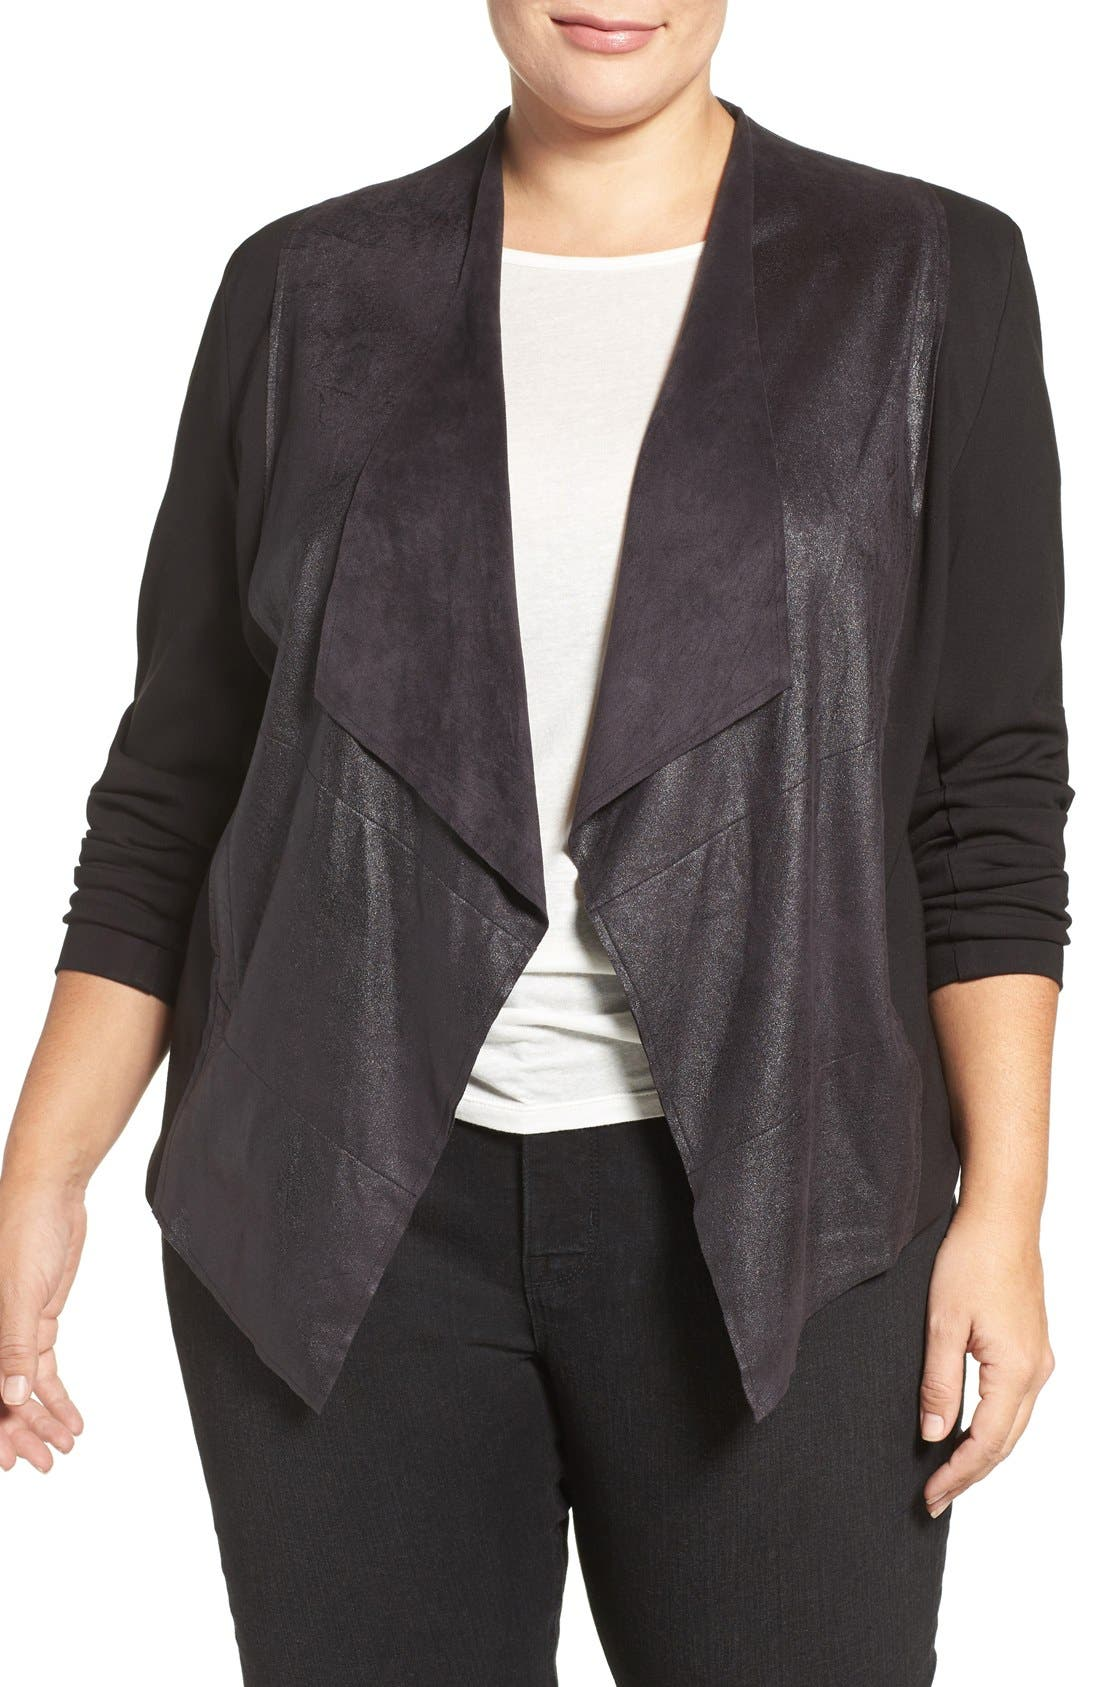 Tart 'Shanan' Faux Leather & Knit Drape Front Jacket (Plus Size)